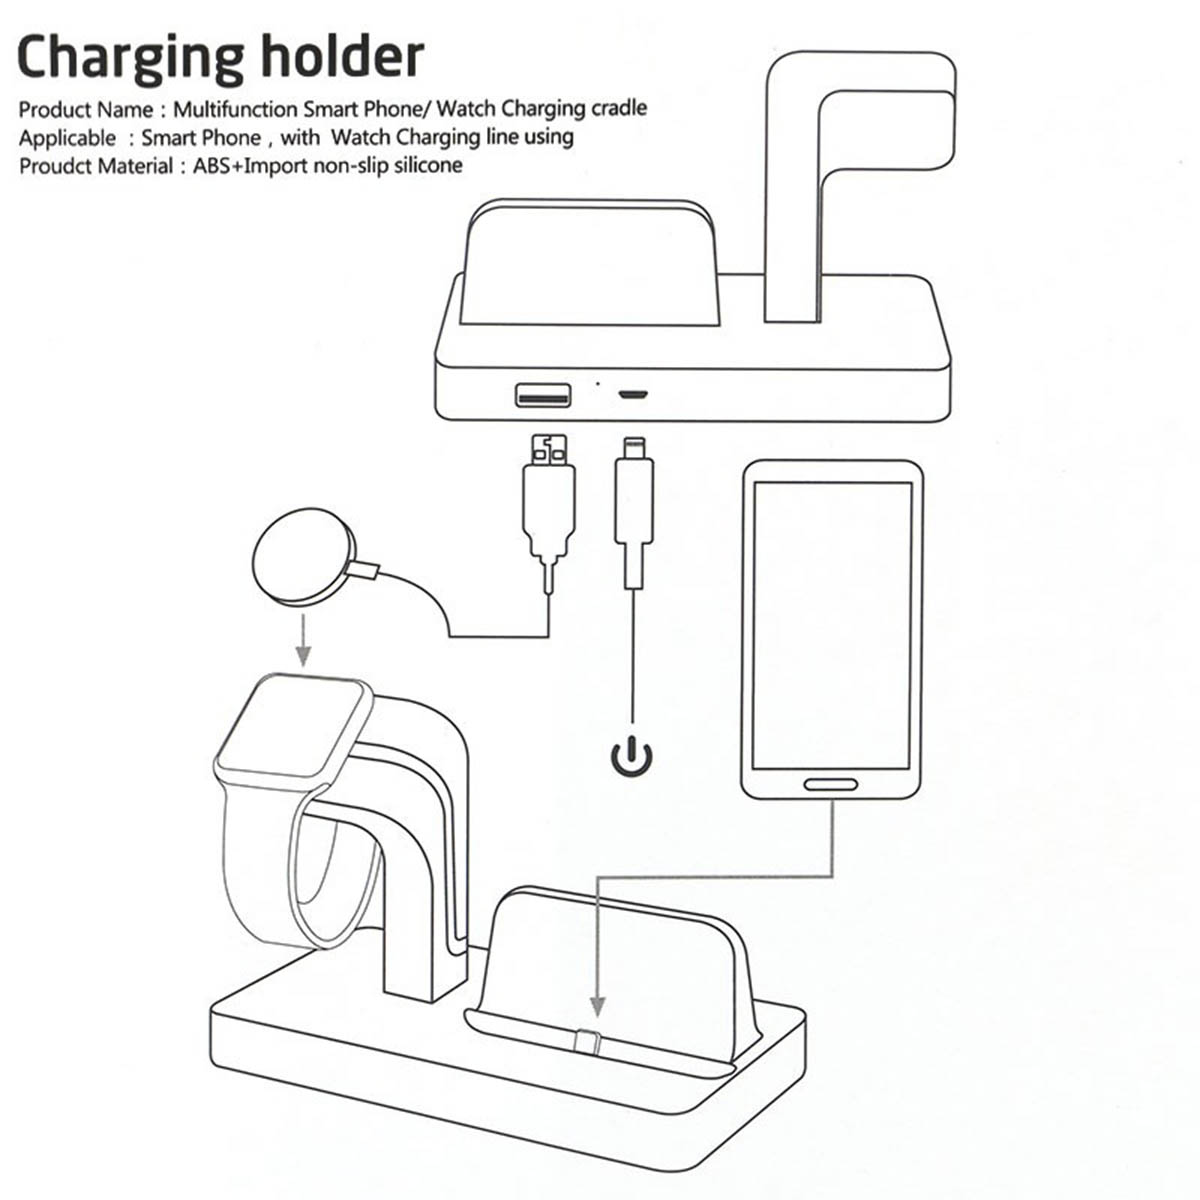 ZX1k 12894 besides Apple Launches Its First Official Charging Dock For Lightning Equipped Iphones further Apples Lightning Connector Finally Detailed In Patent Filing likewise 1822 Touch Fur Ipad 2 Mit Home Button Schwarz 2086 also Sonos Connect Wiring Diagram. on iphone charger dock